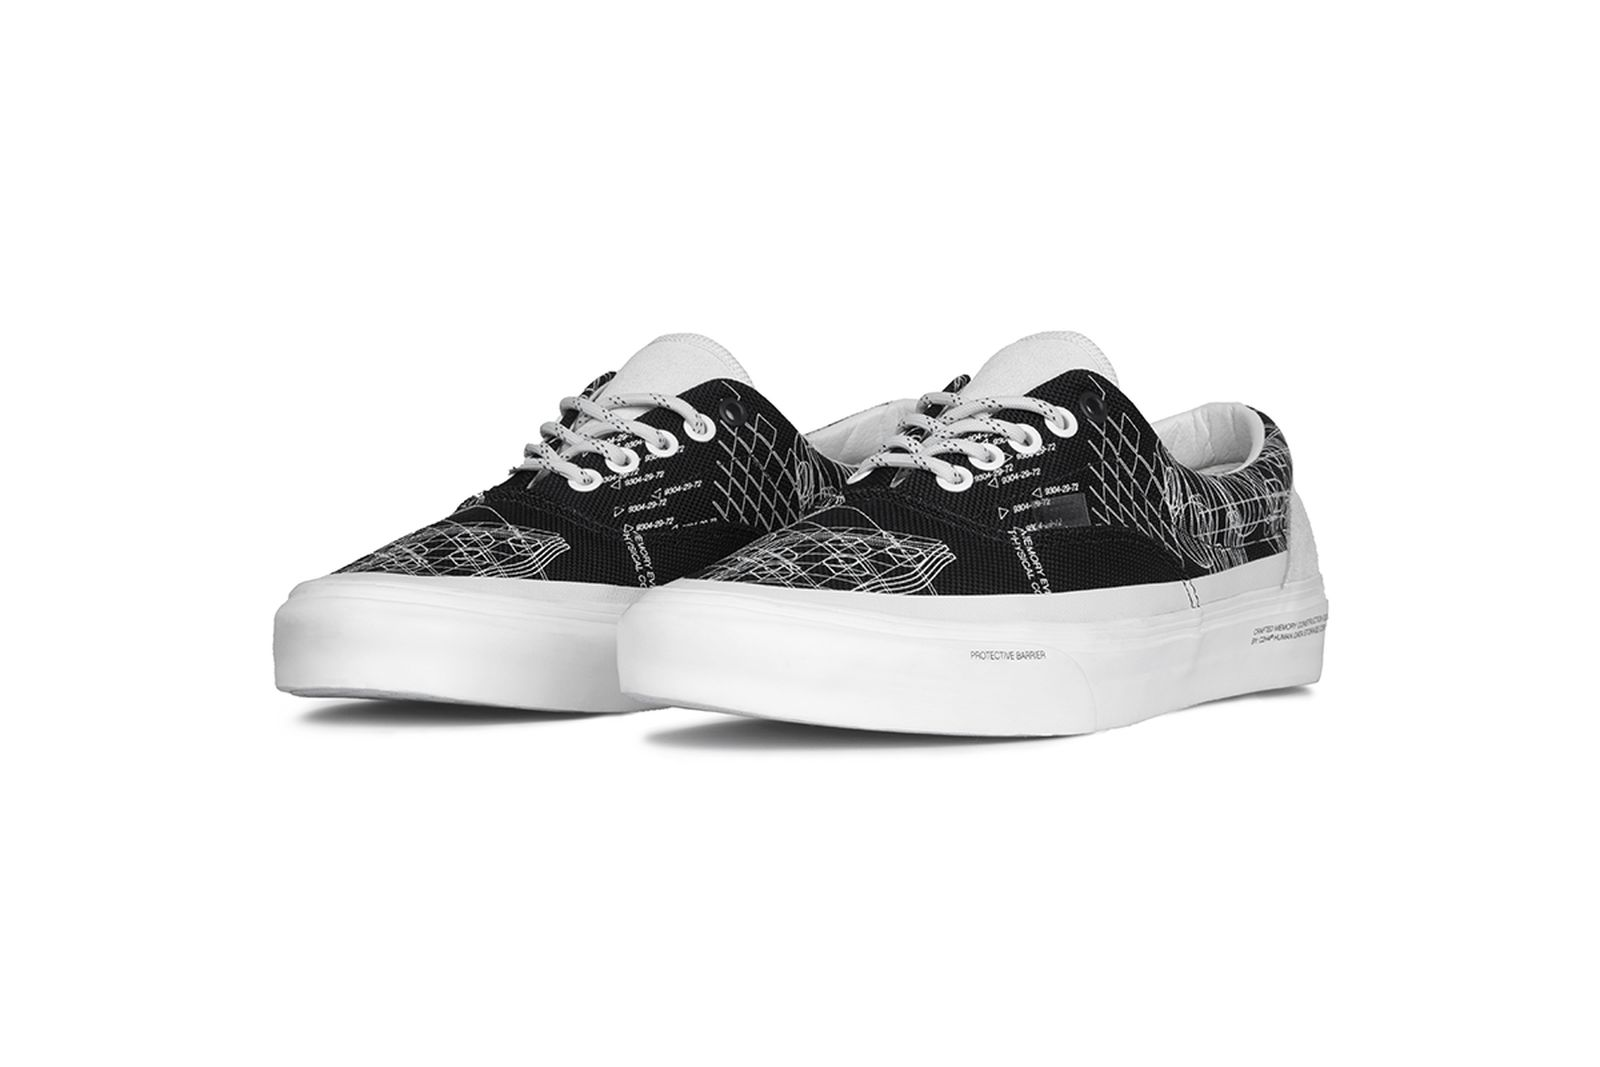 c2h4-vans-the-imagination-of-future-2-release-date-price-1-a-01